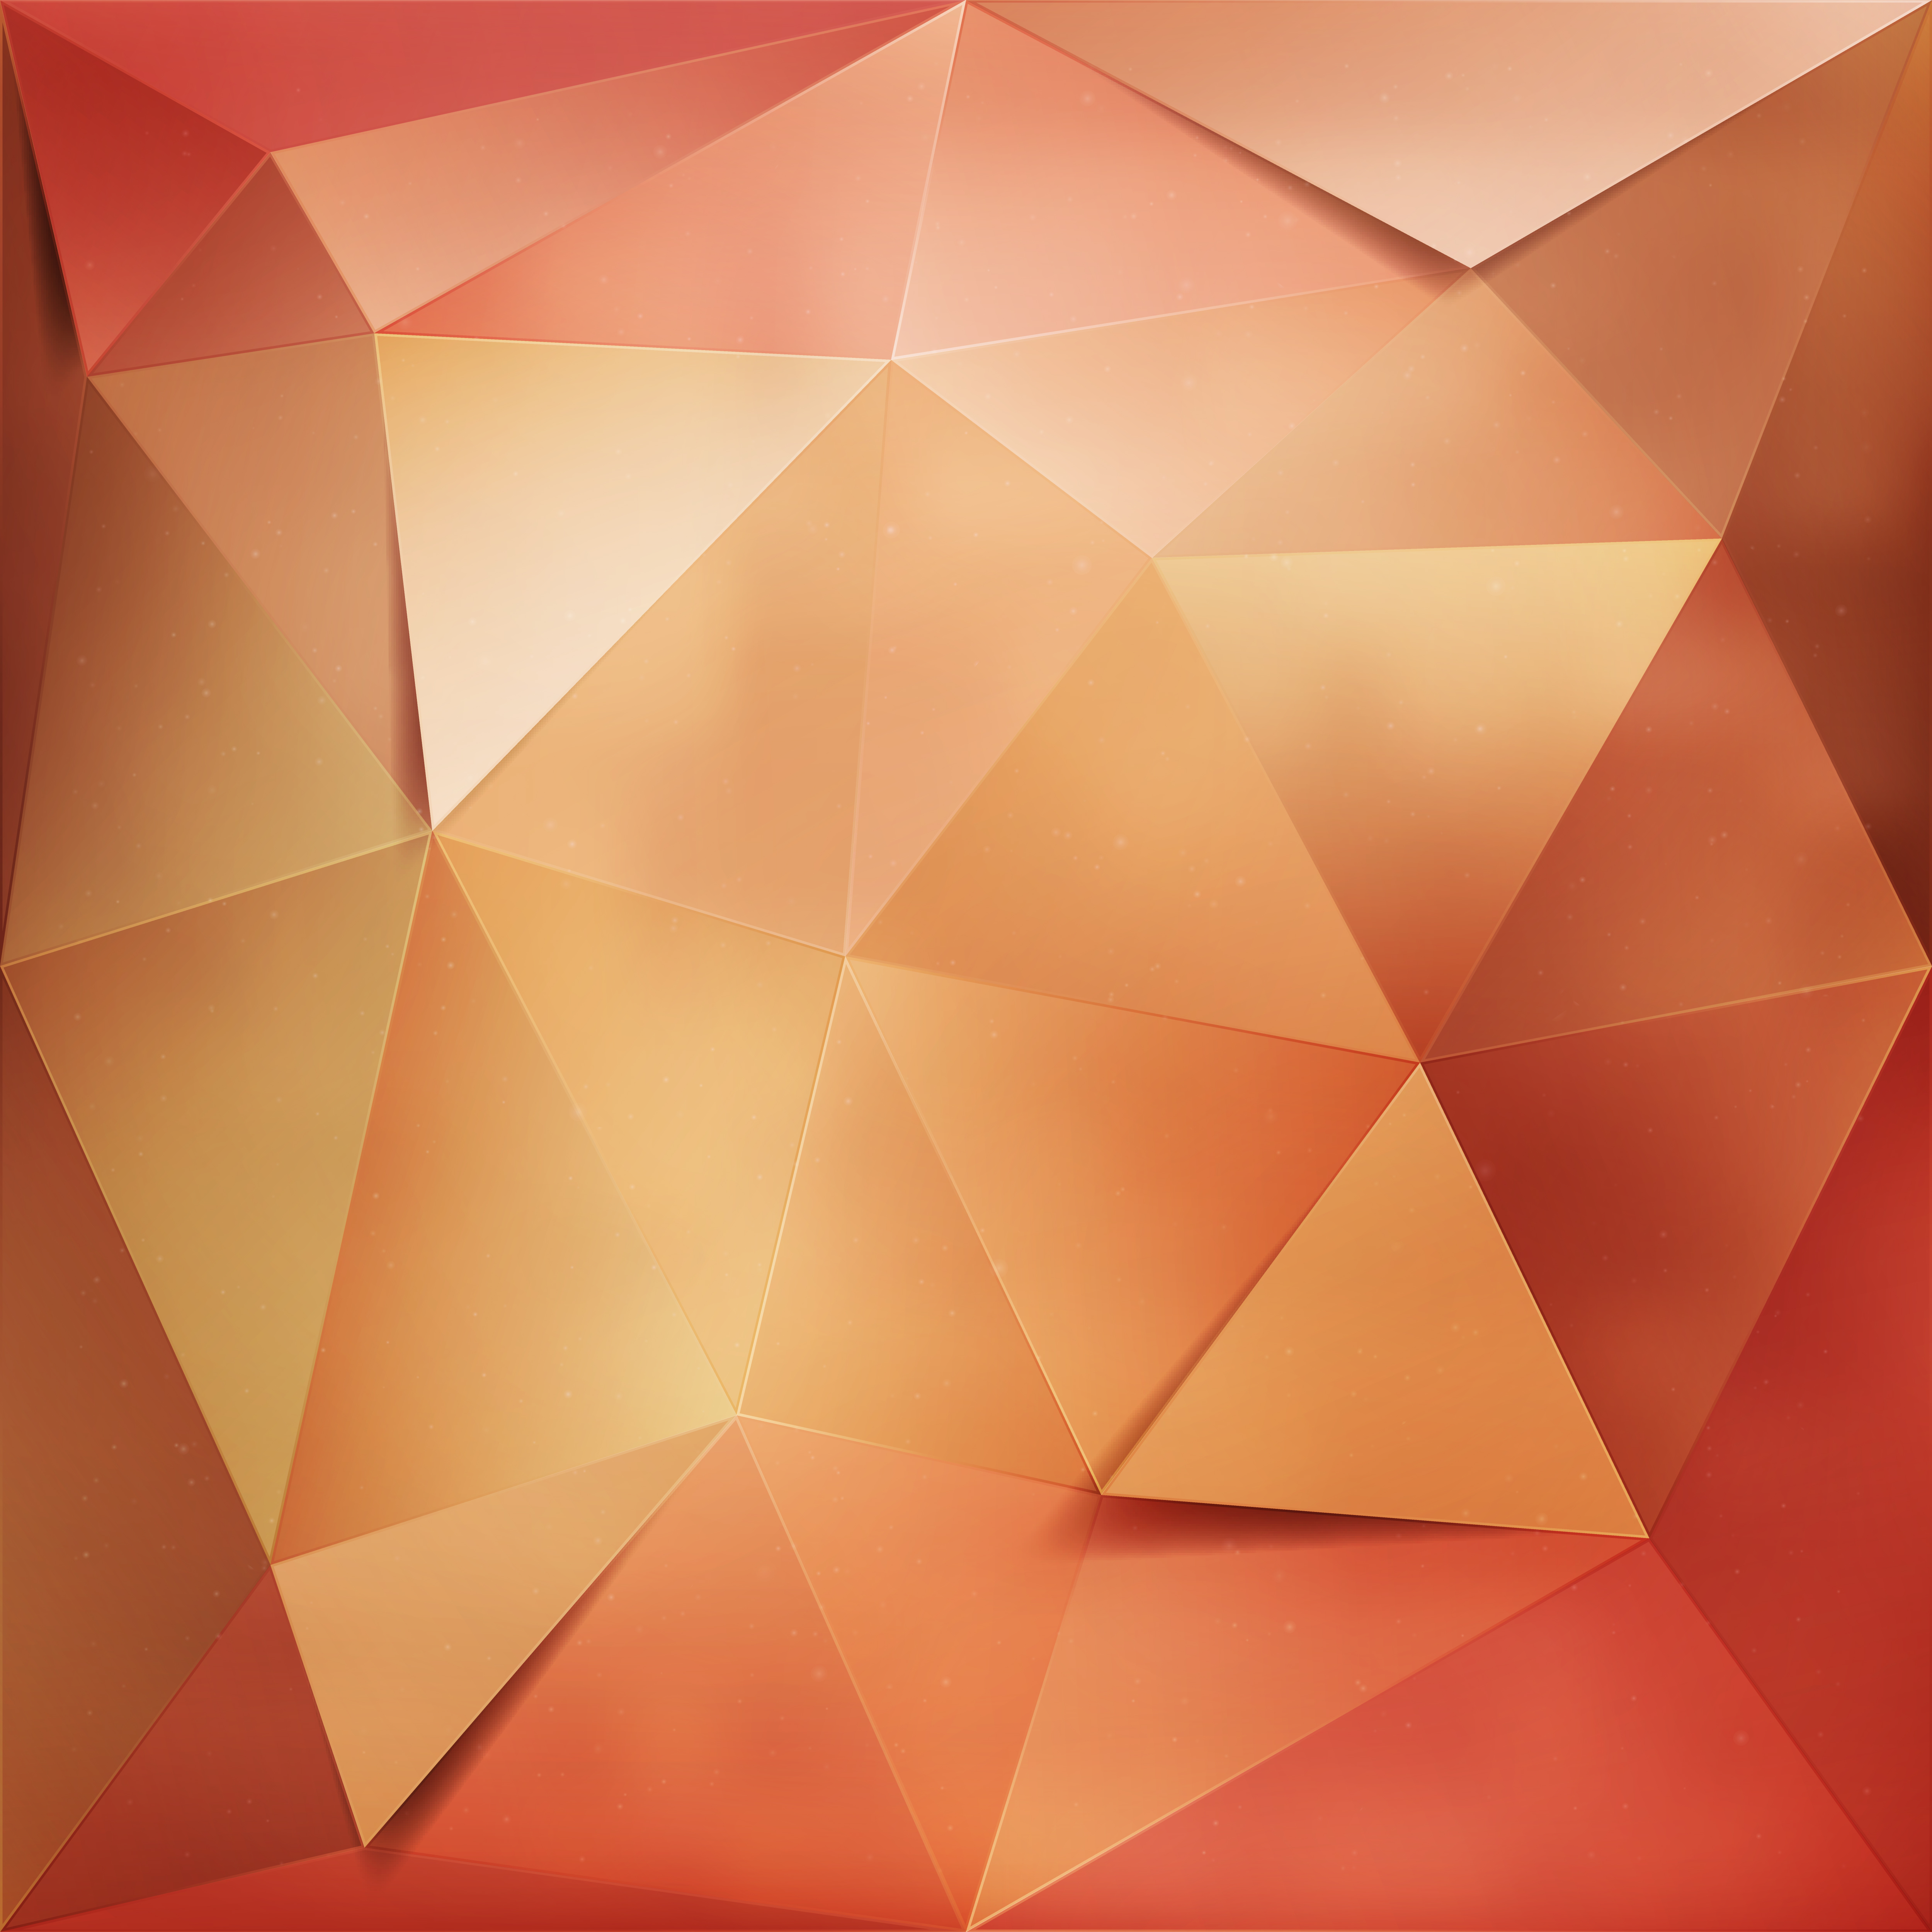 Abstract Colorful Triangle Shape: Download Free Vectors, Clipart